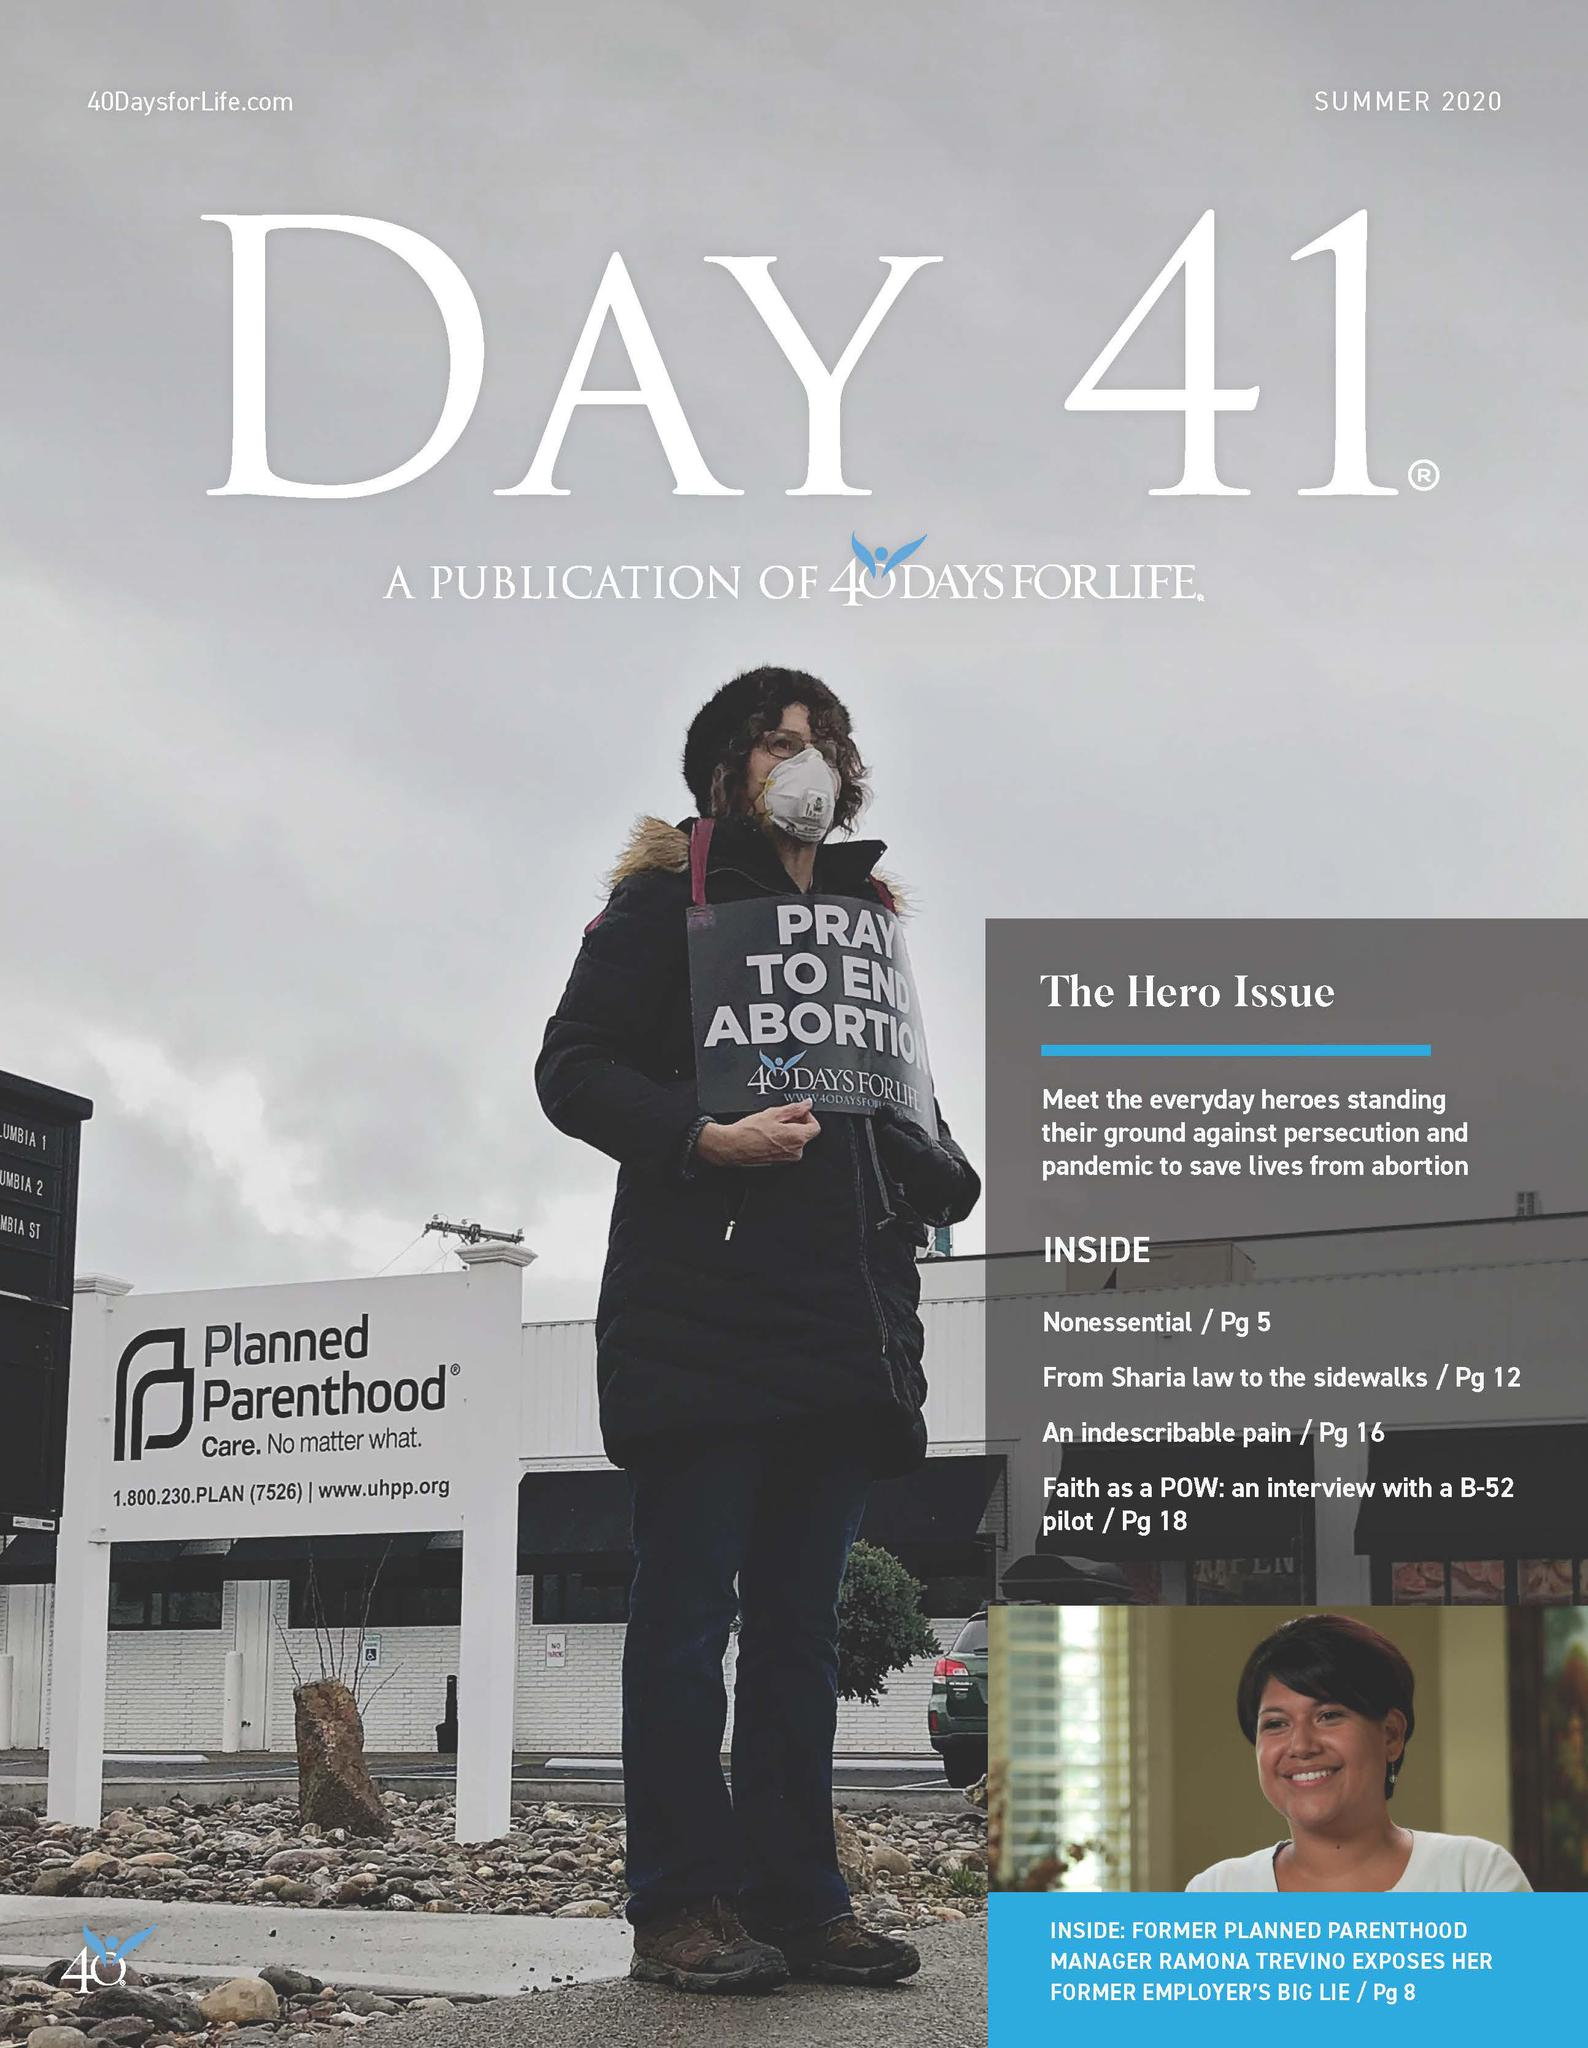 DAY 41 Magazine - SUMMER 2020 (4809579921494)